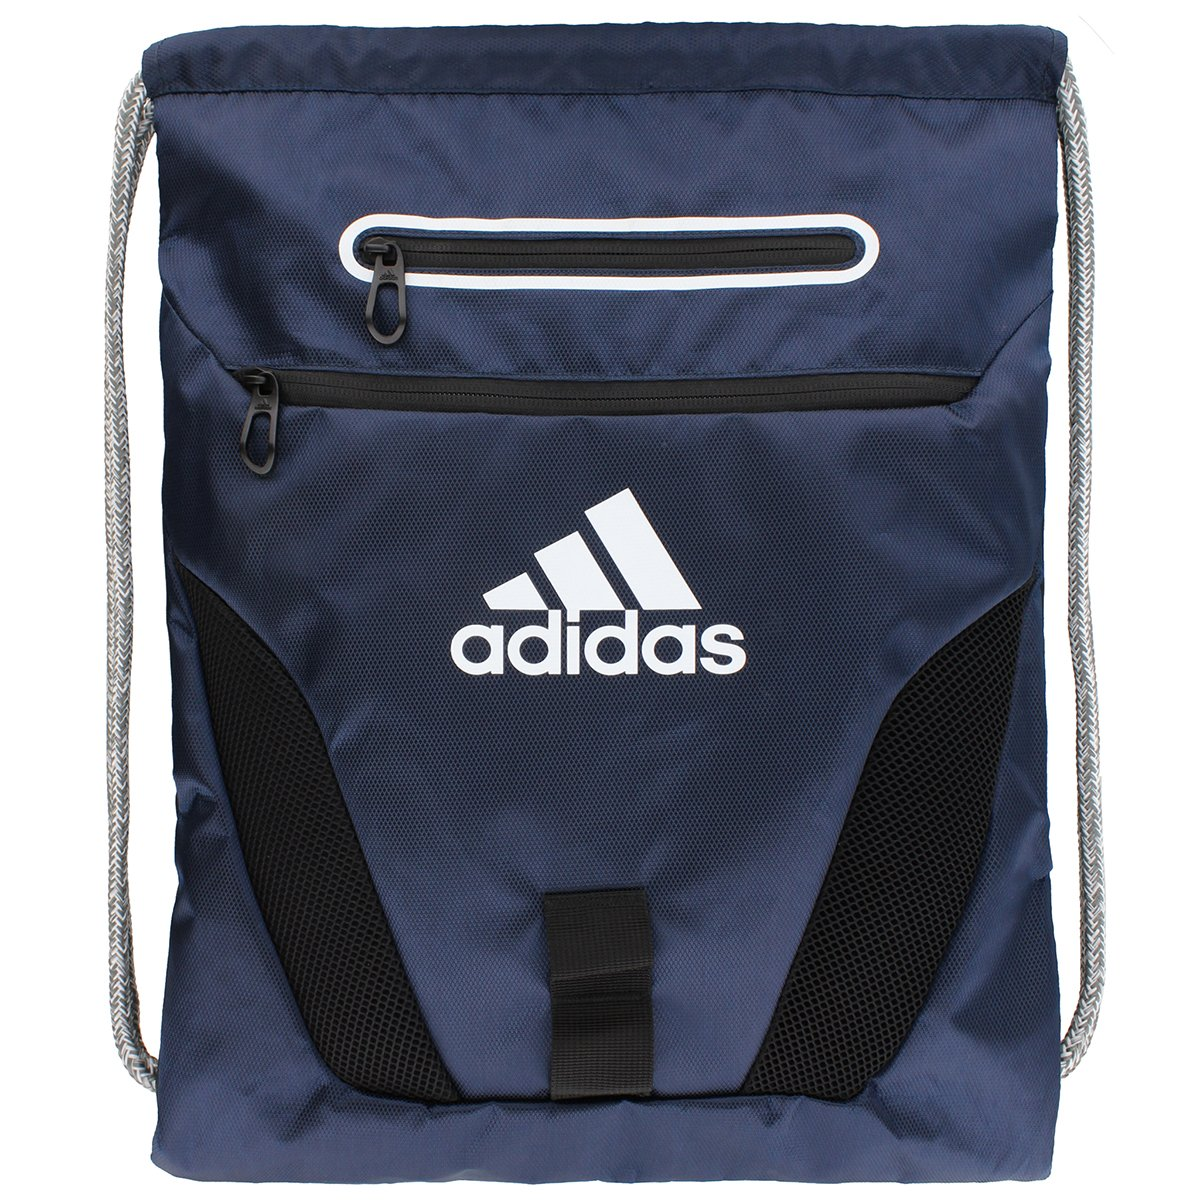 adidas Rumble Sack Pack, One Size, Collegiate Navy/White/Black/Heather Cording